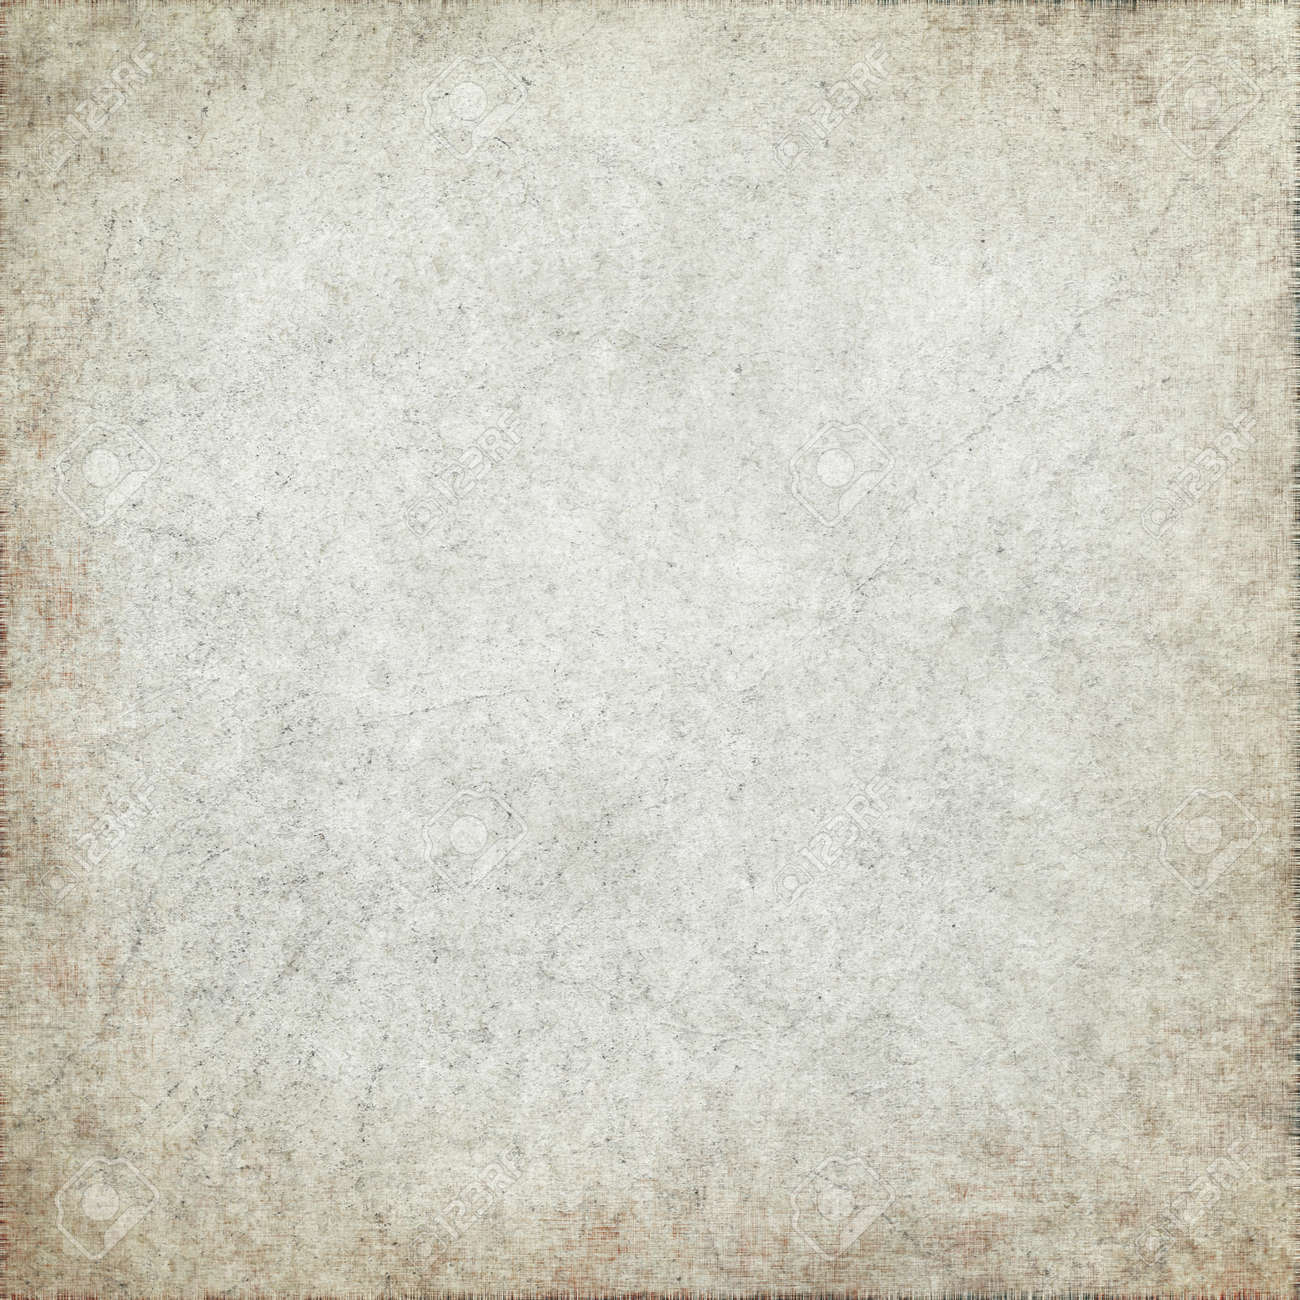 old wall texture or white paper parchment texture vintage background